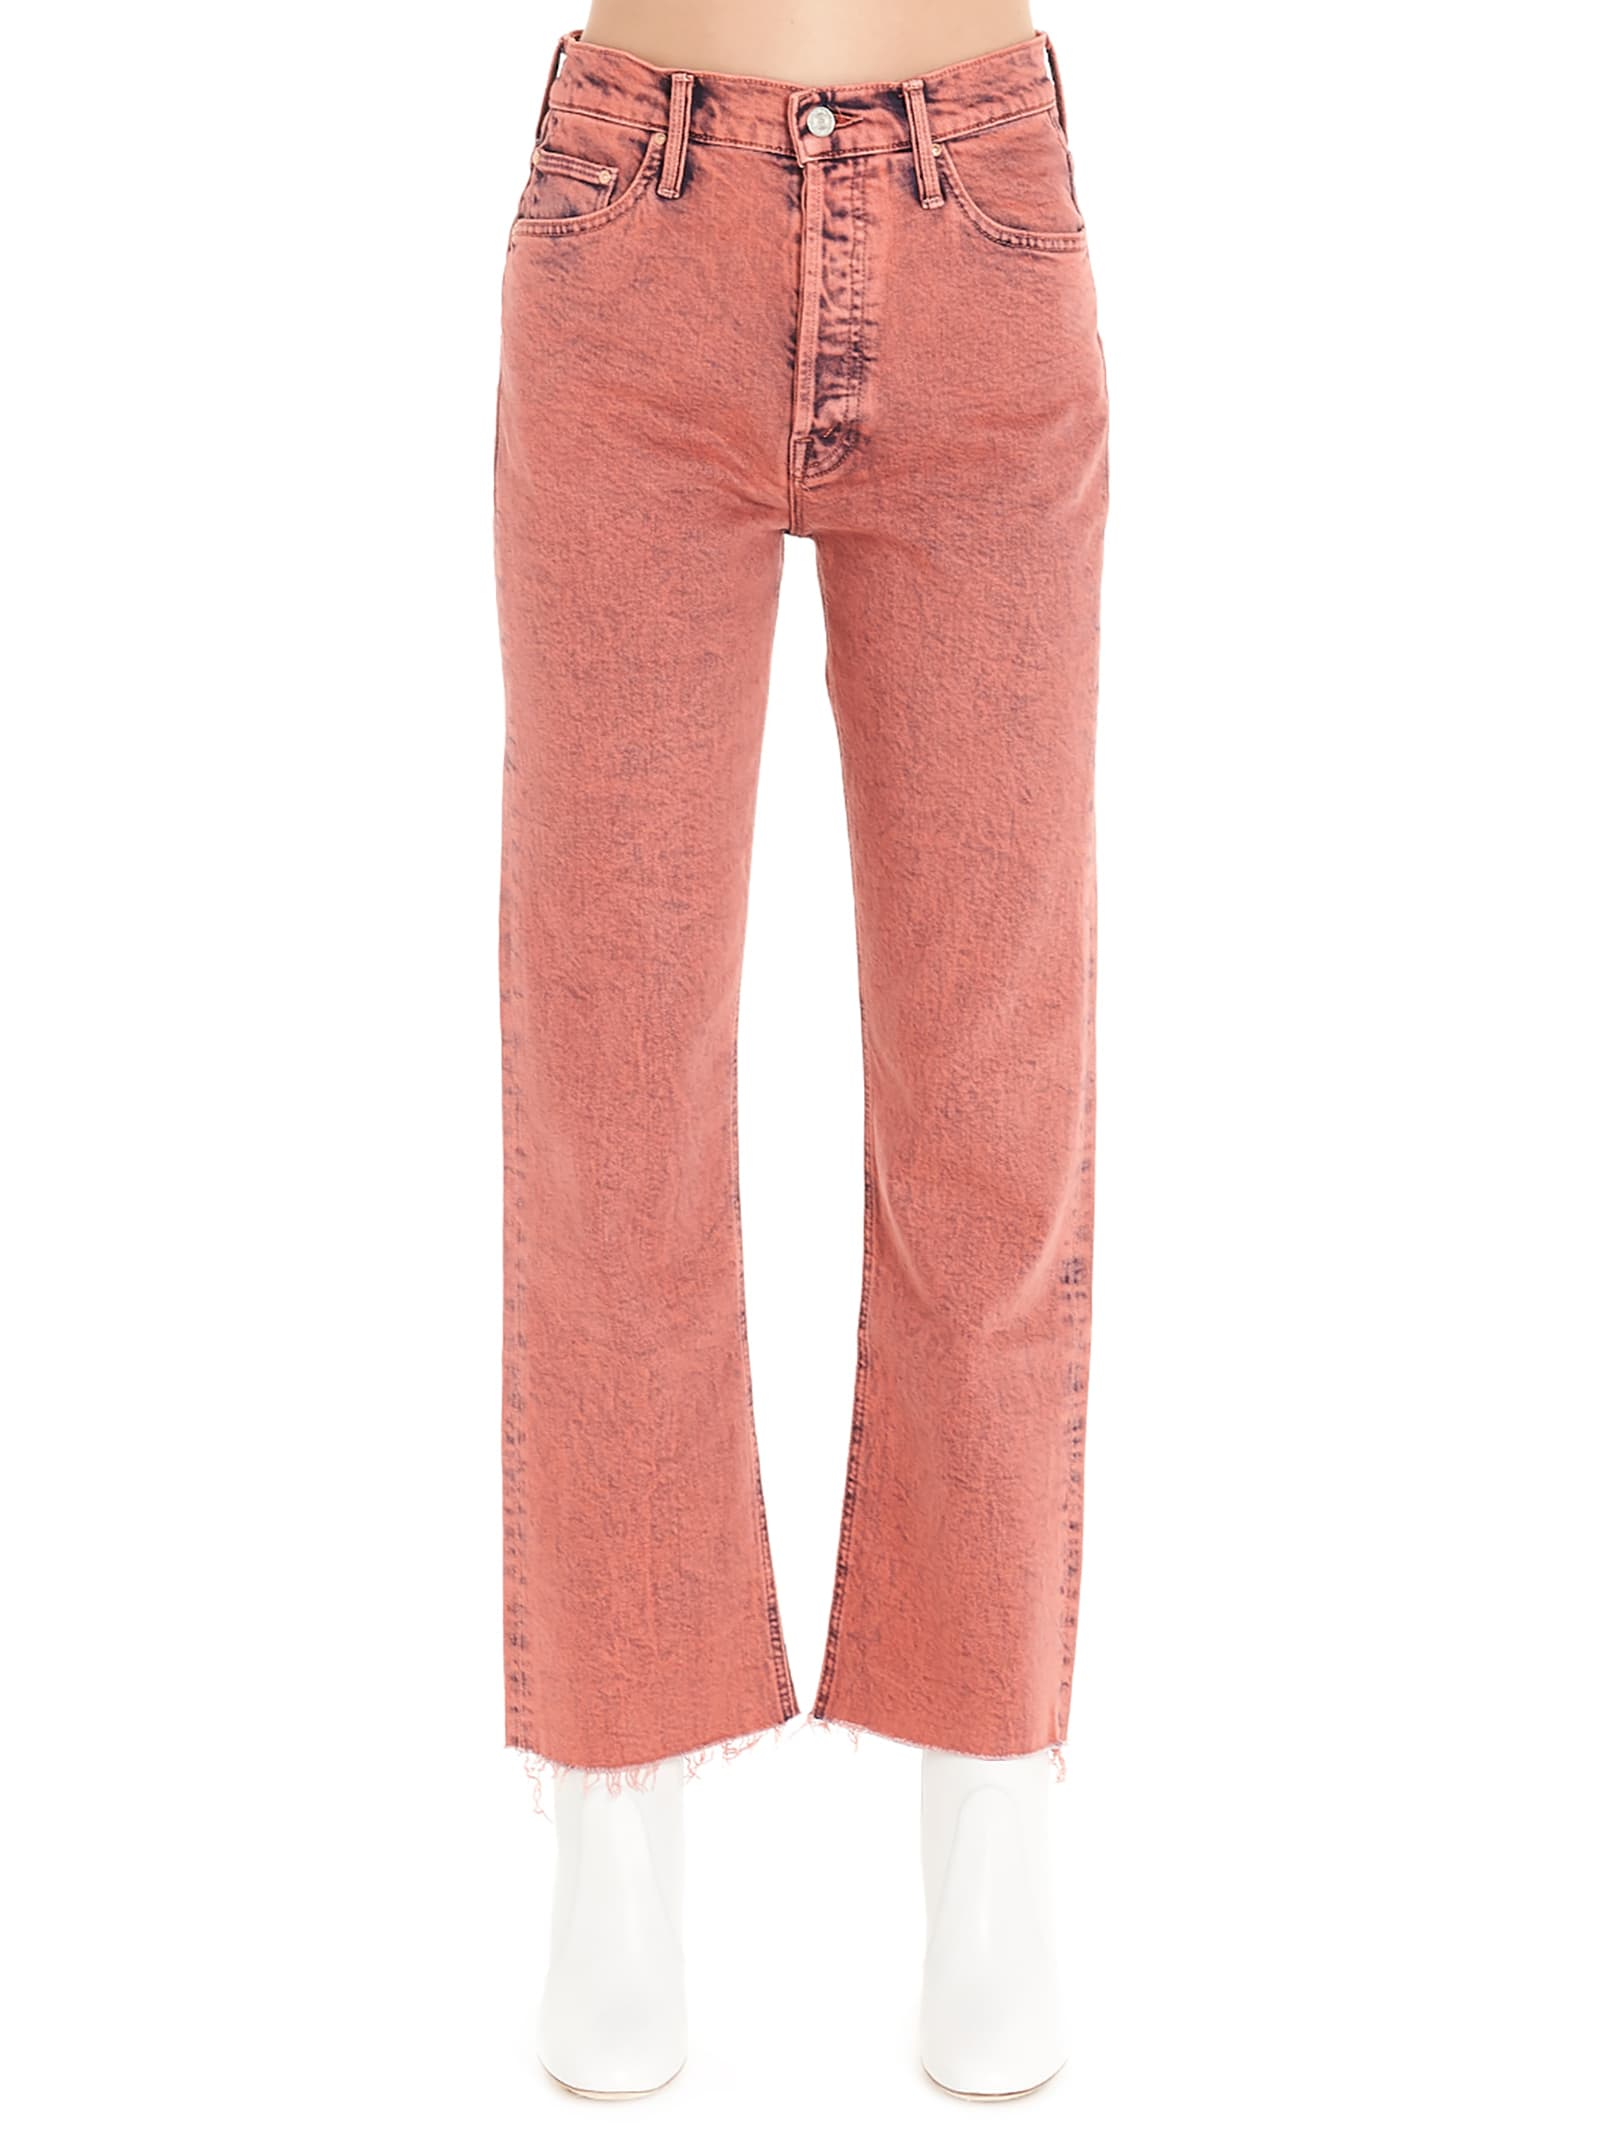 Mother tripped Crop Fray Jeans